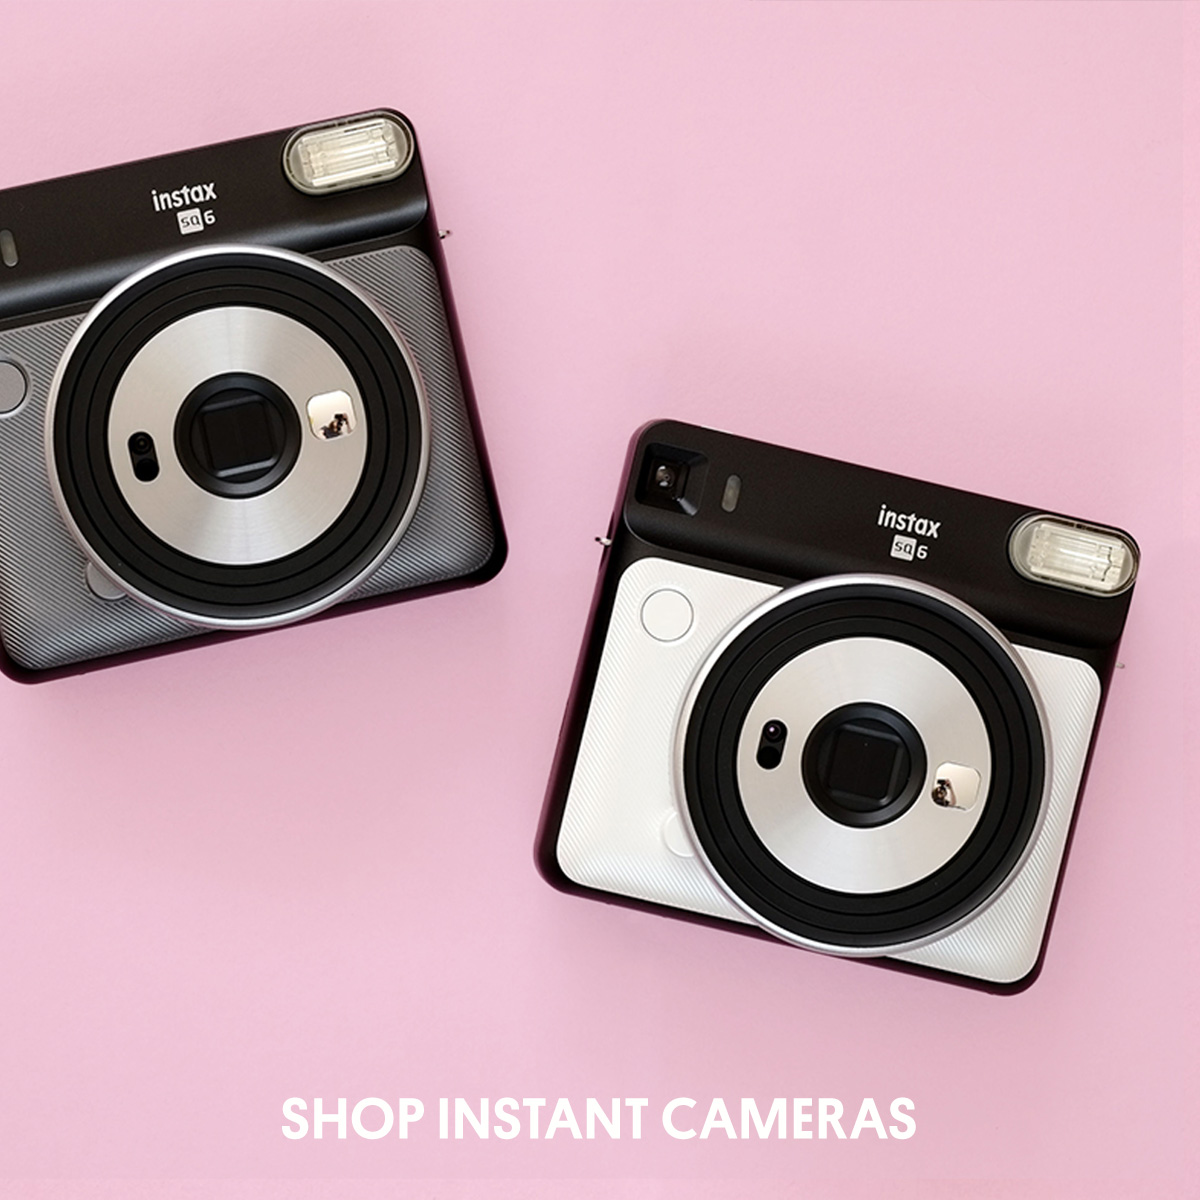 Shop Instant Cameras at Parallax Photographic